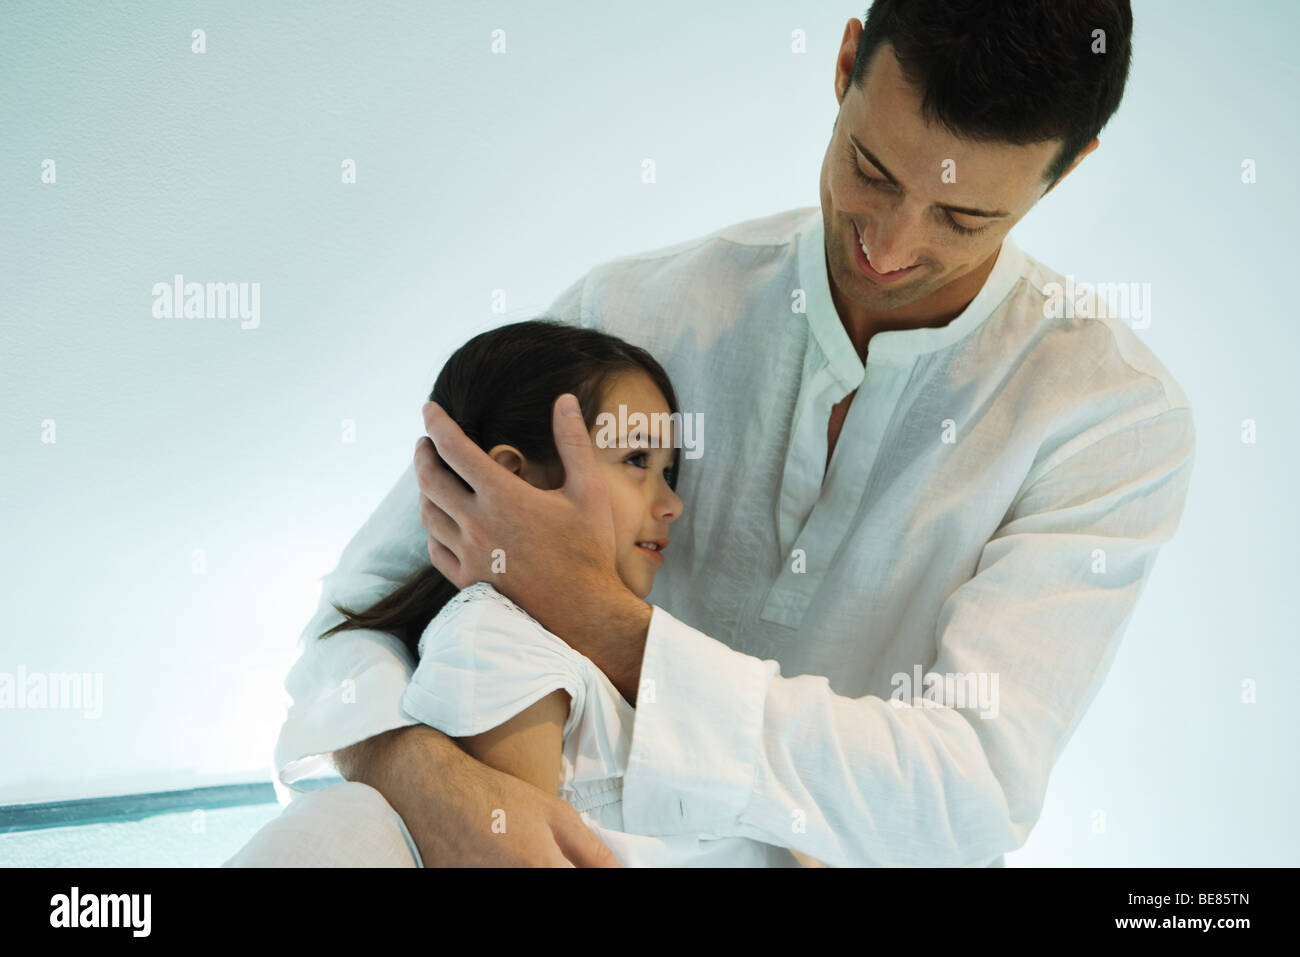 Father embracing daughter, smiling - Stock Image